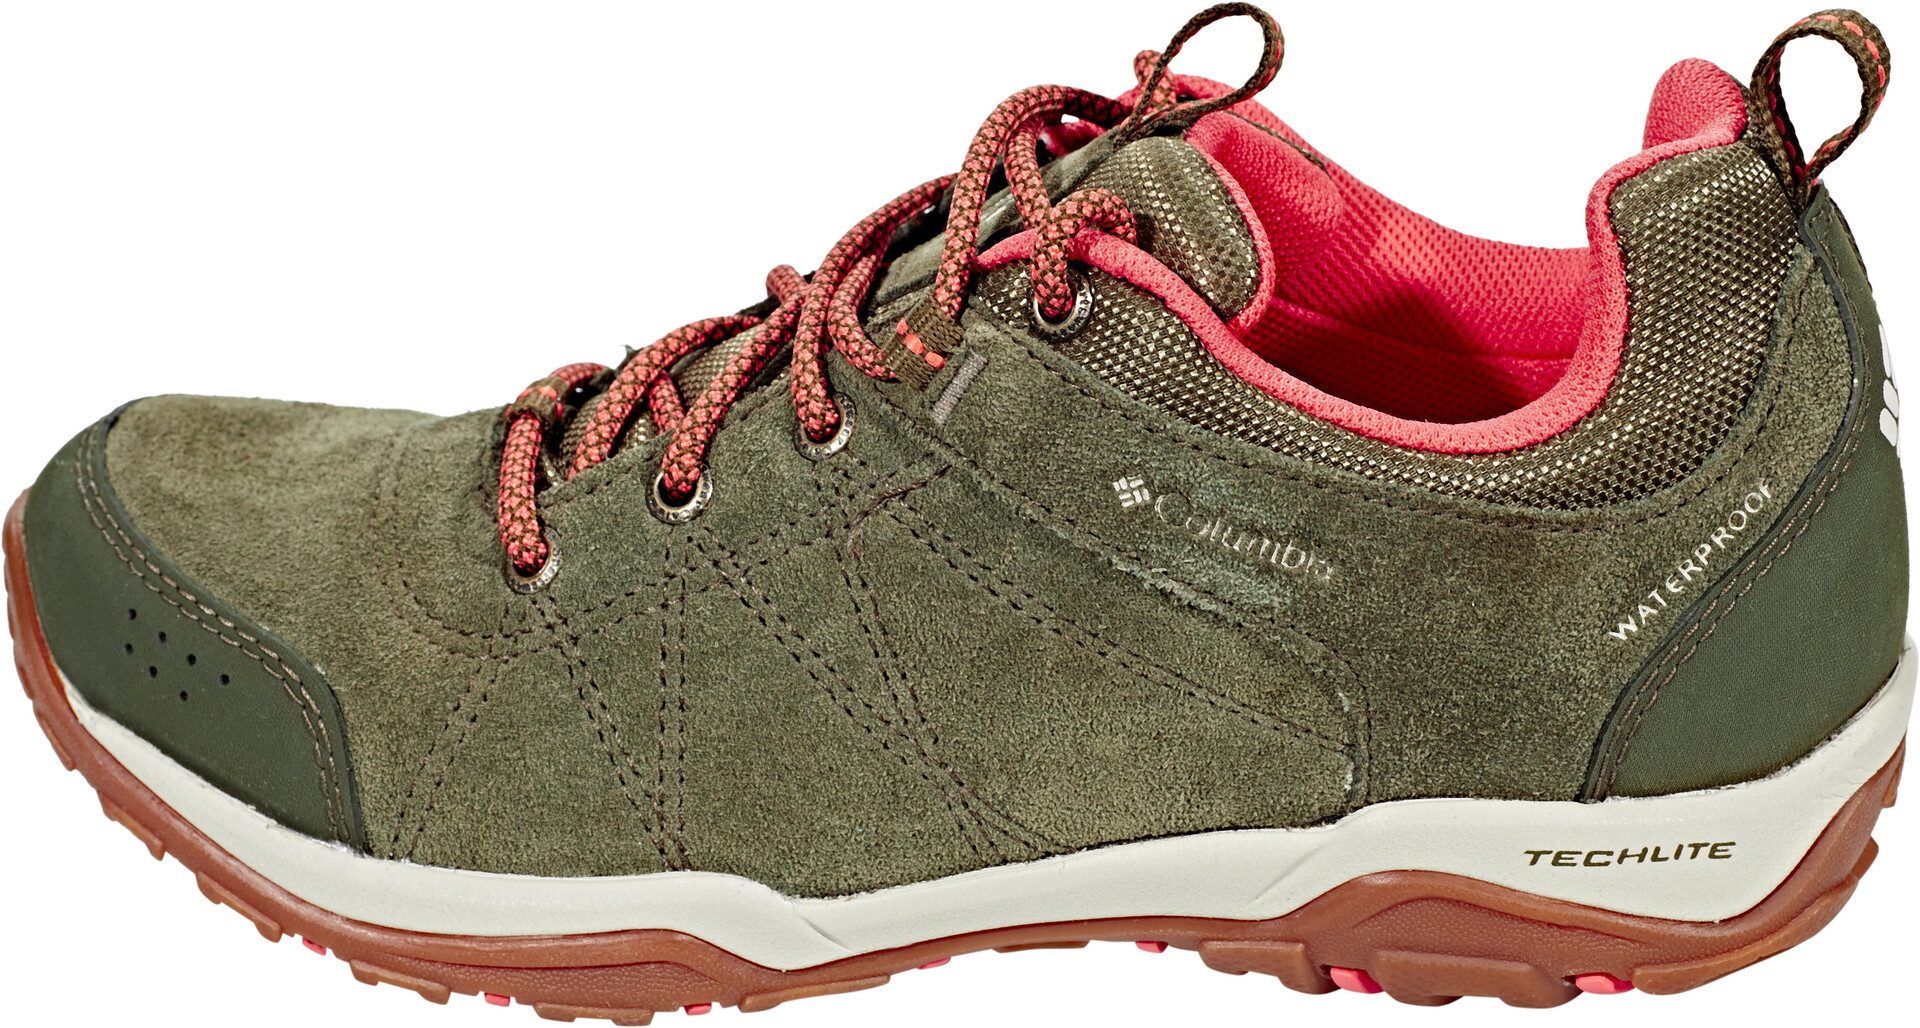 Venture Columbia Chaussures Olive Low Waterproof Sur Femme Fire pqxwIq5YnS